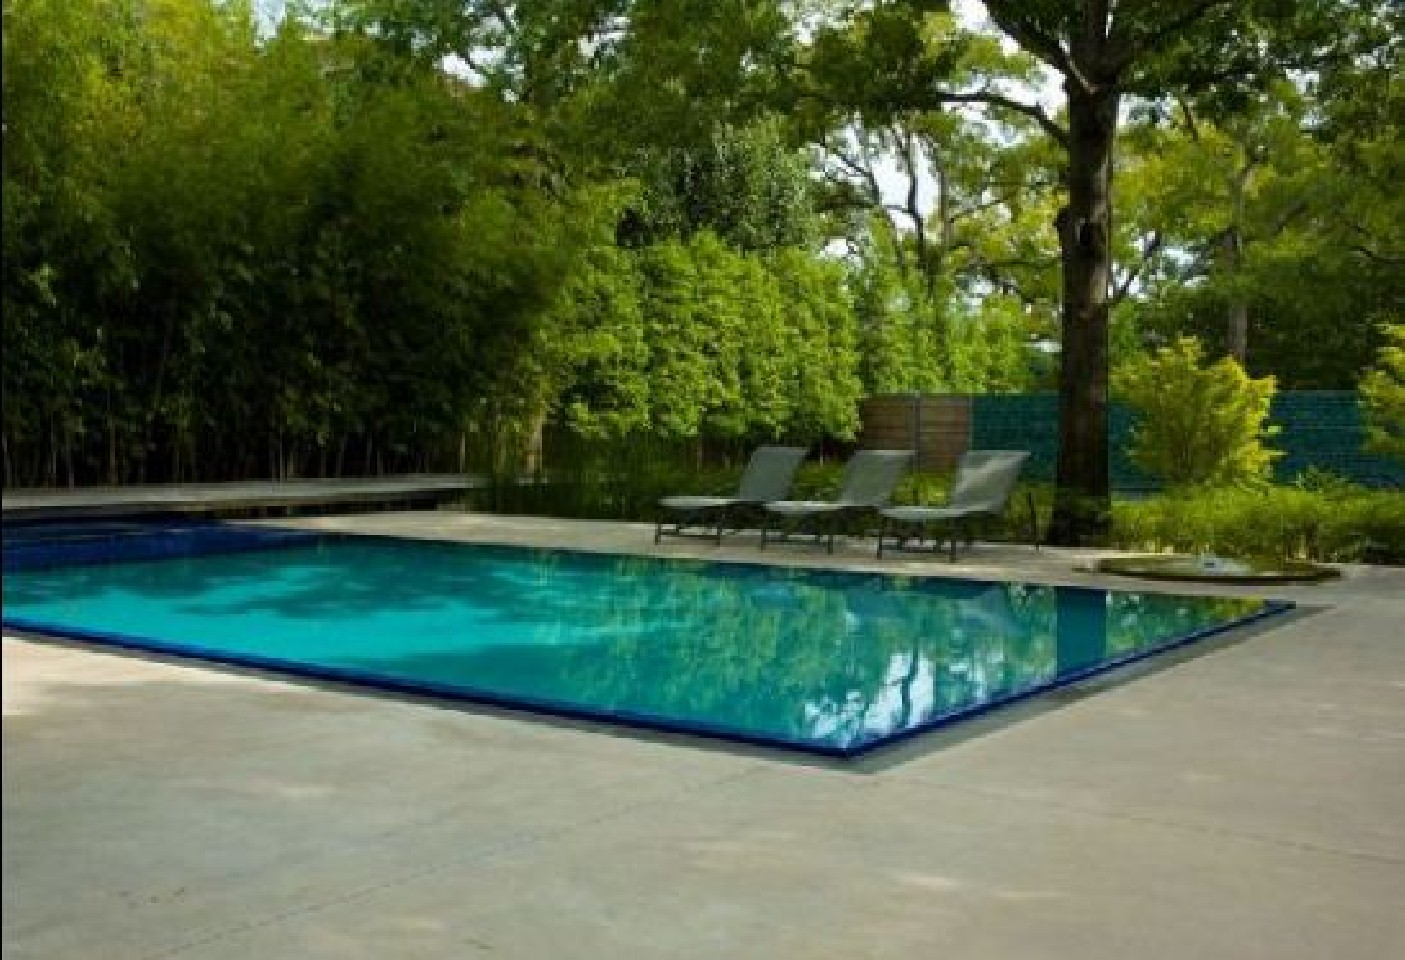 Home garden design ideas wallpapers pictures fashion mobile shayari - Swimming pool landscape design ideas ...